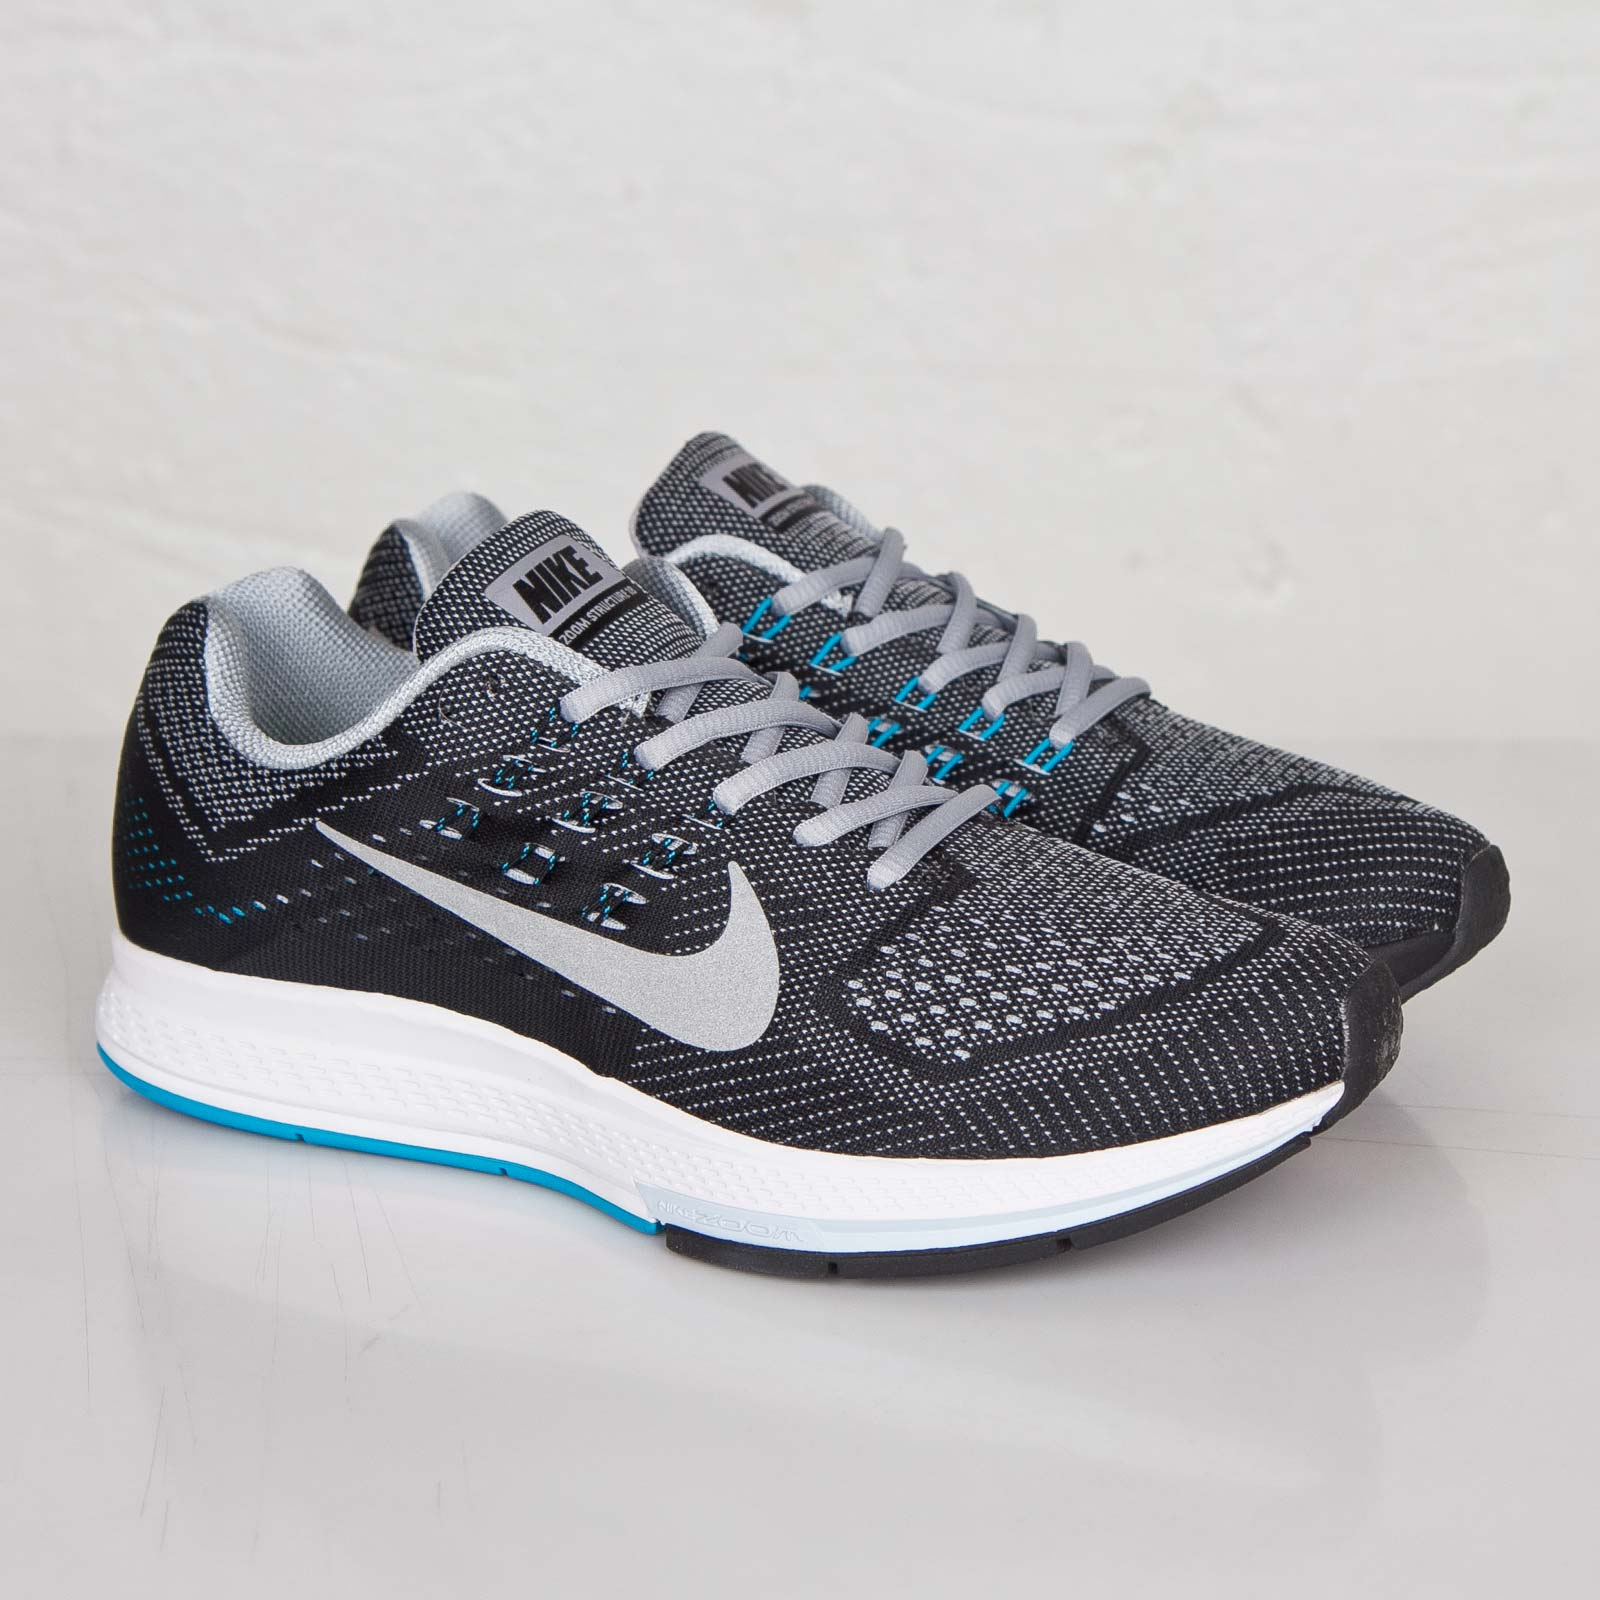 size 40 7ce13 cd7a8 Nike Air Zoom Structure 18 - 683731-002 - Sneakersnstuff ...